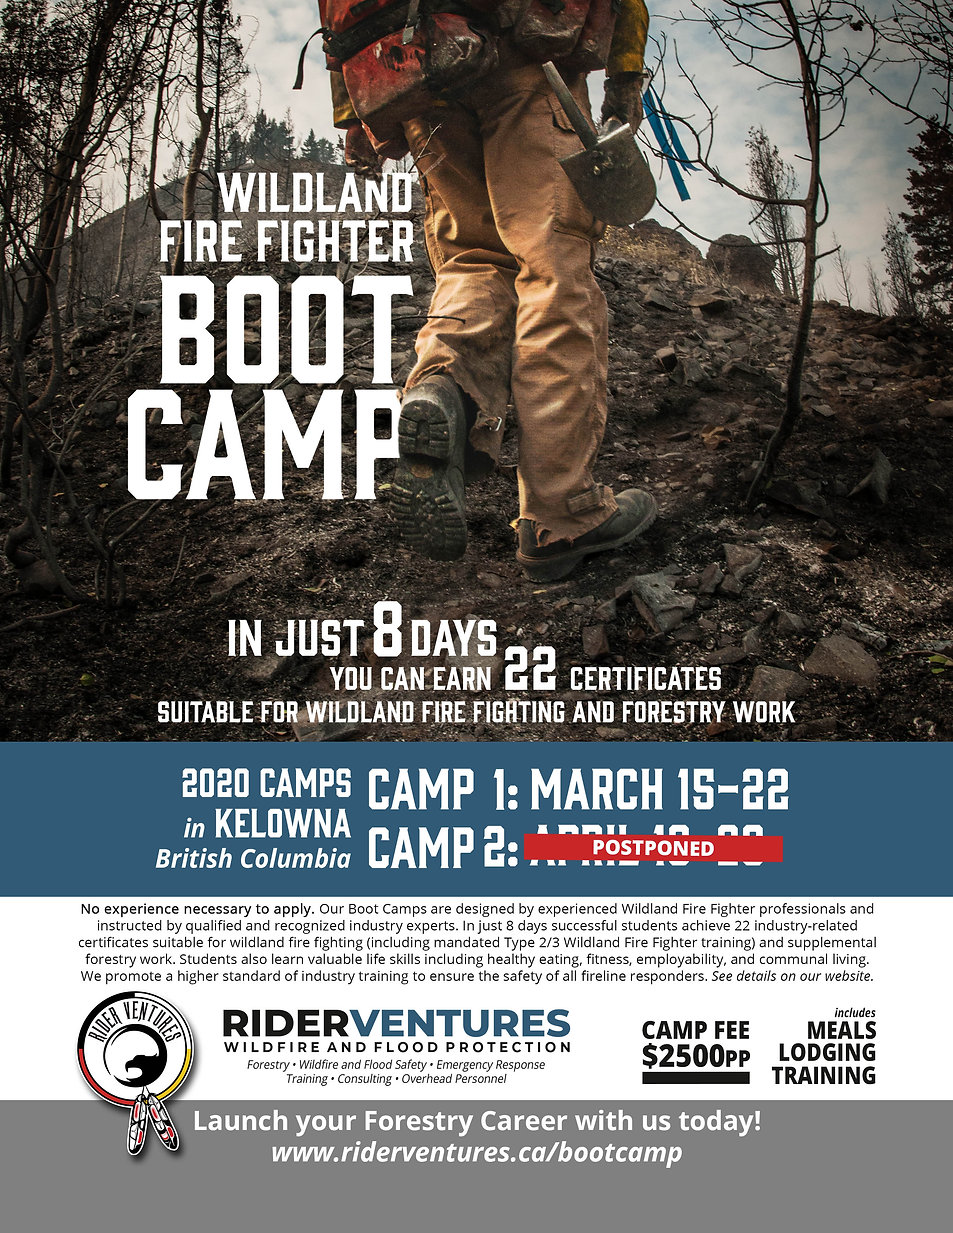 2020 BootCamp Poster Camp 2 Postponed.jp